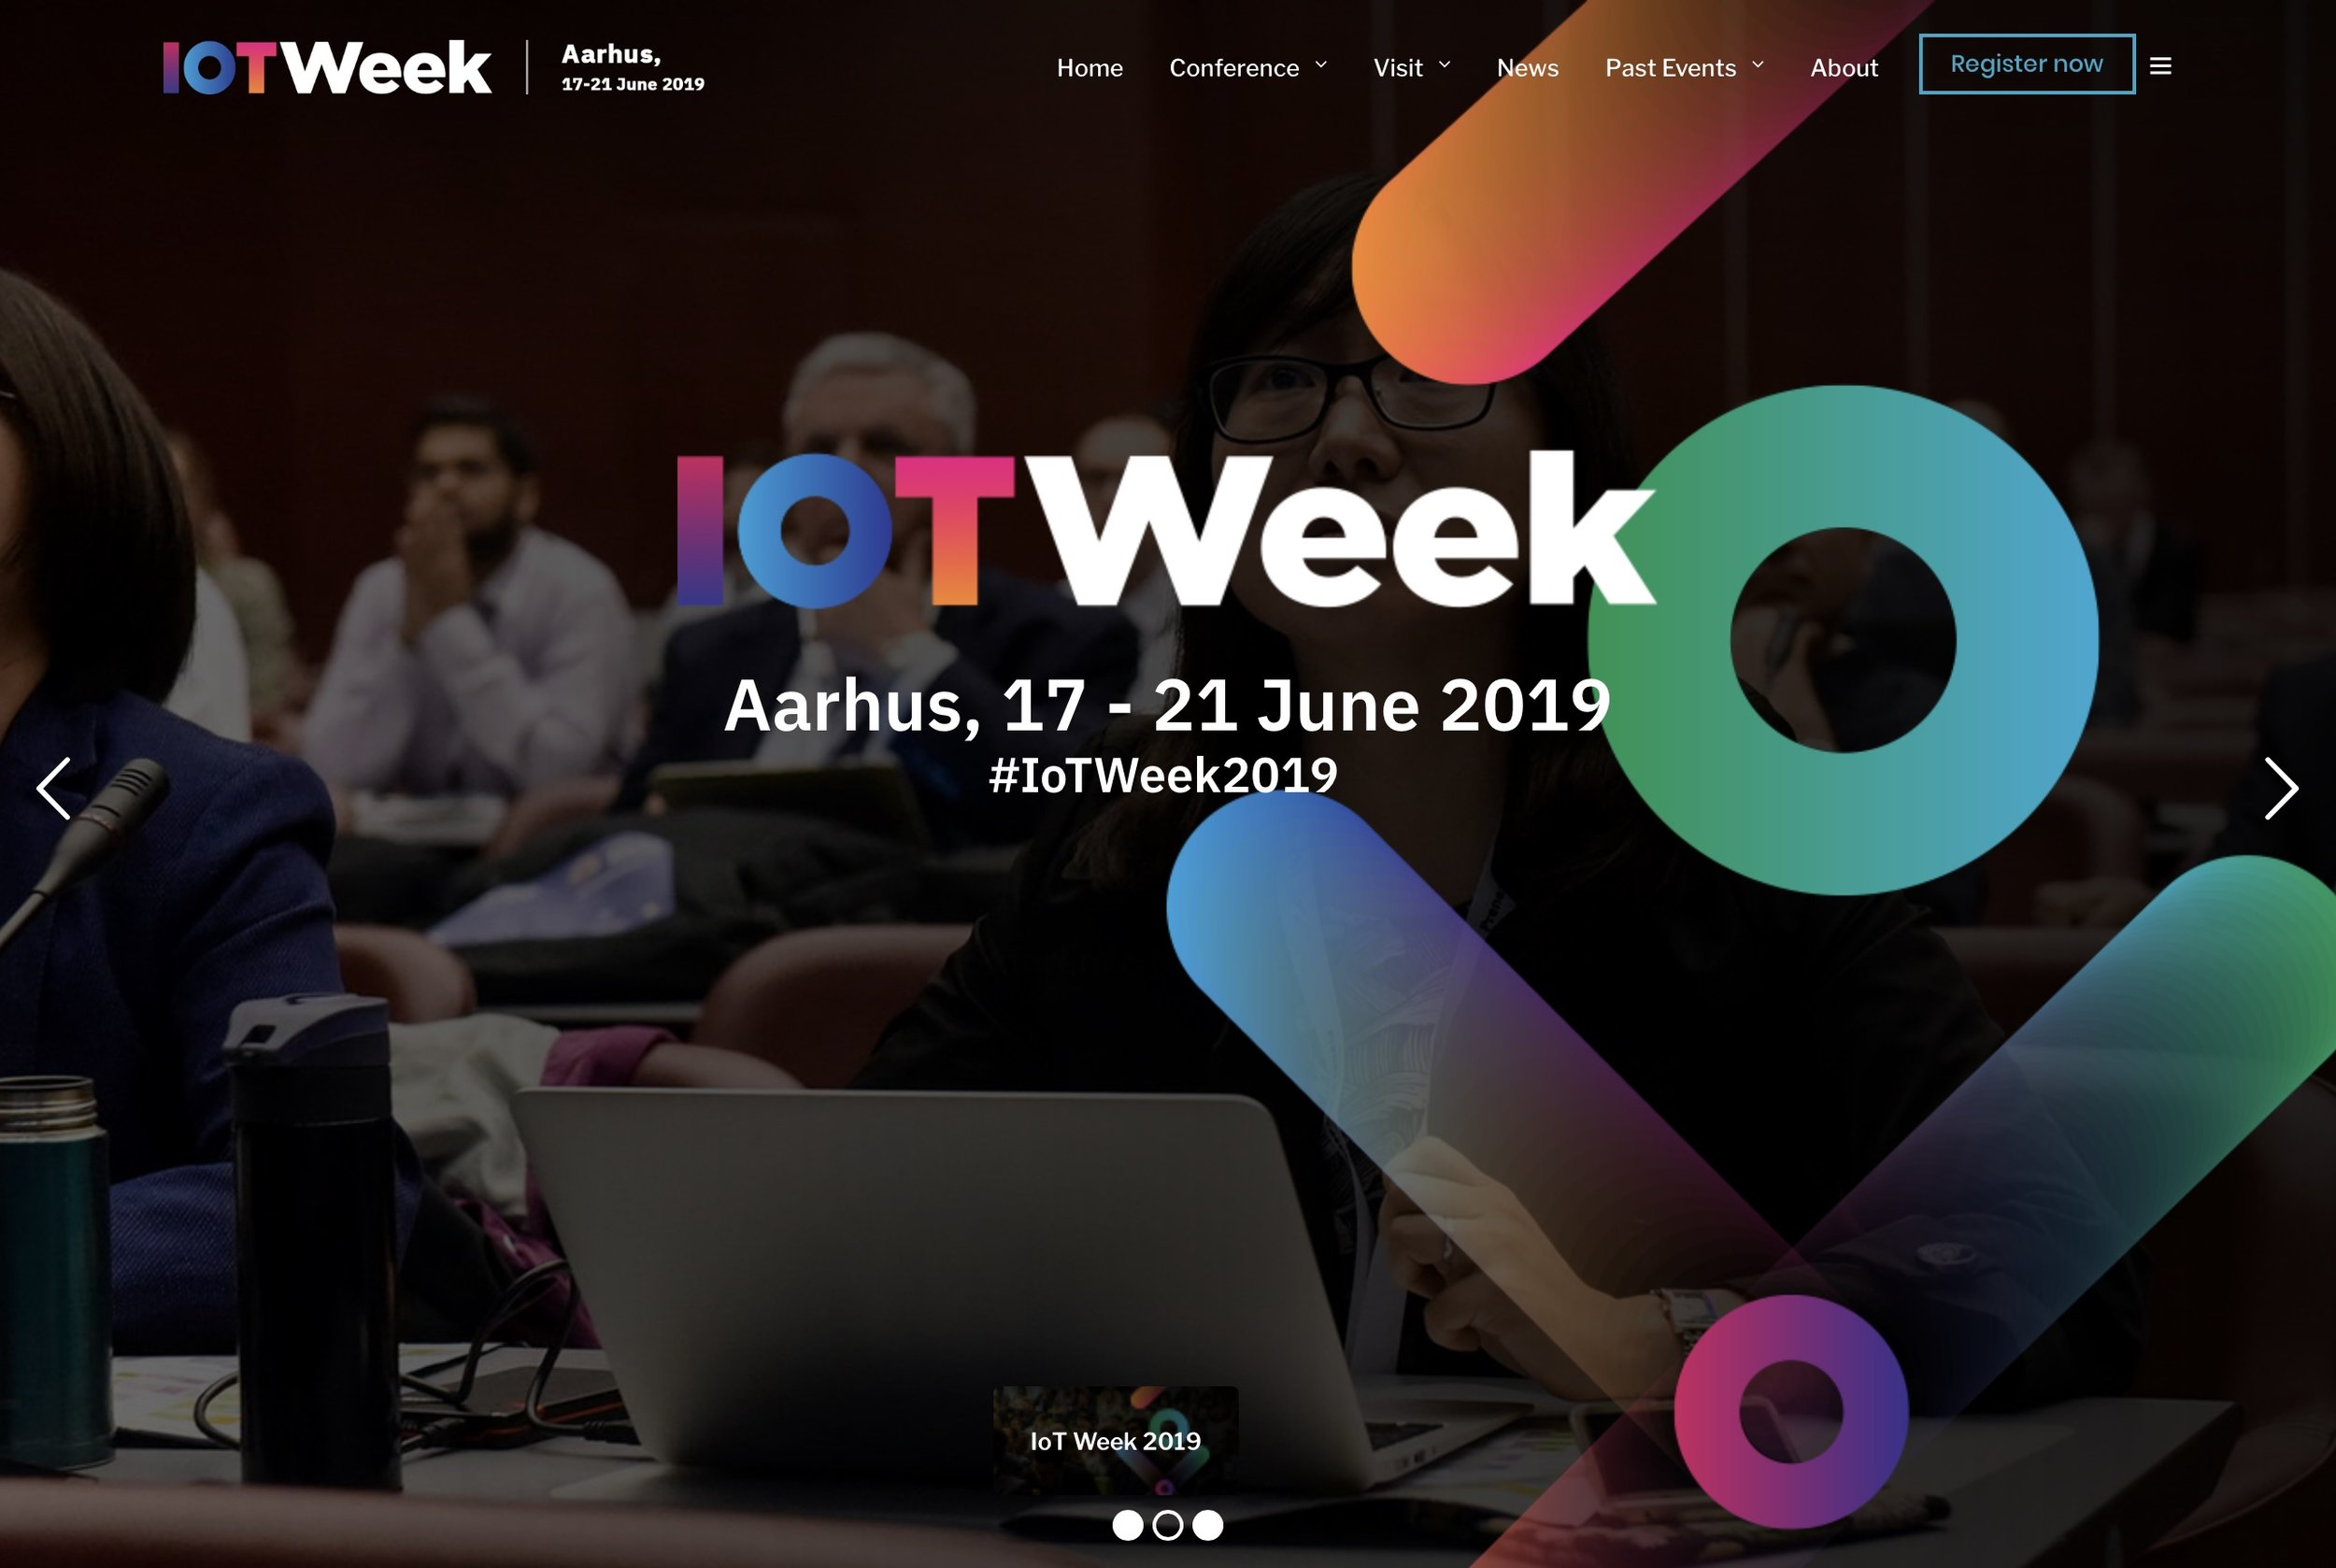 Please find below the full script for my keynote at the IoT Week for the IoT in Marketing track in Århus June 18, 2019: